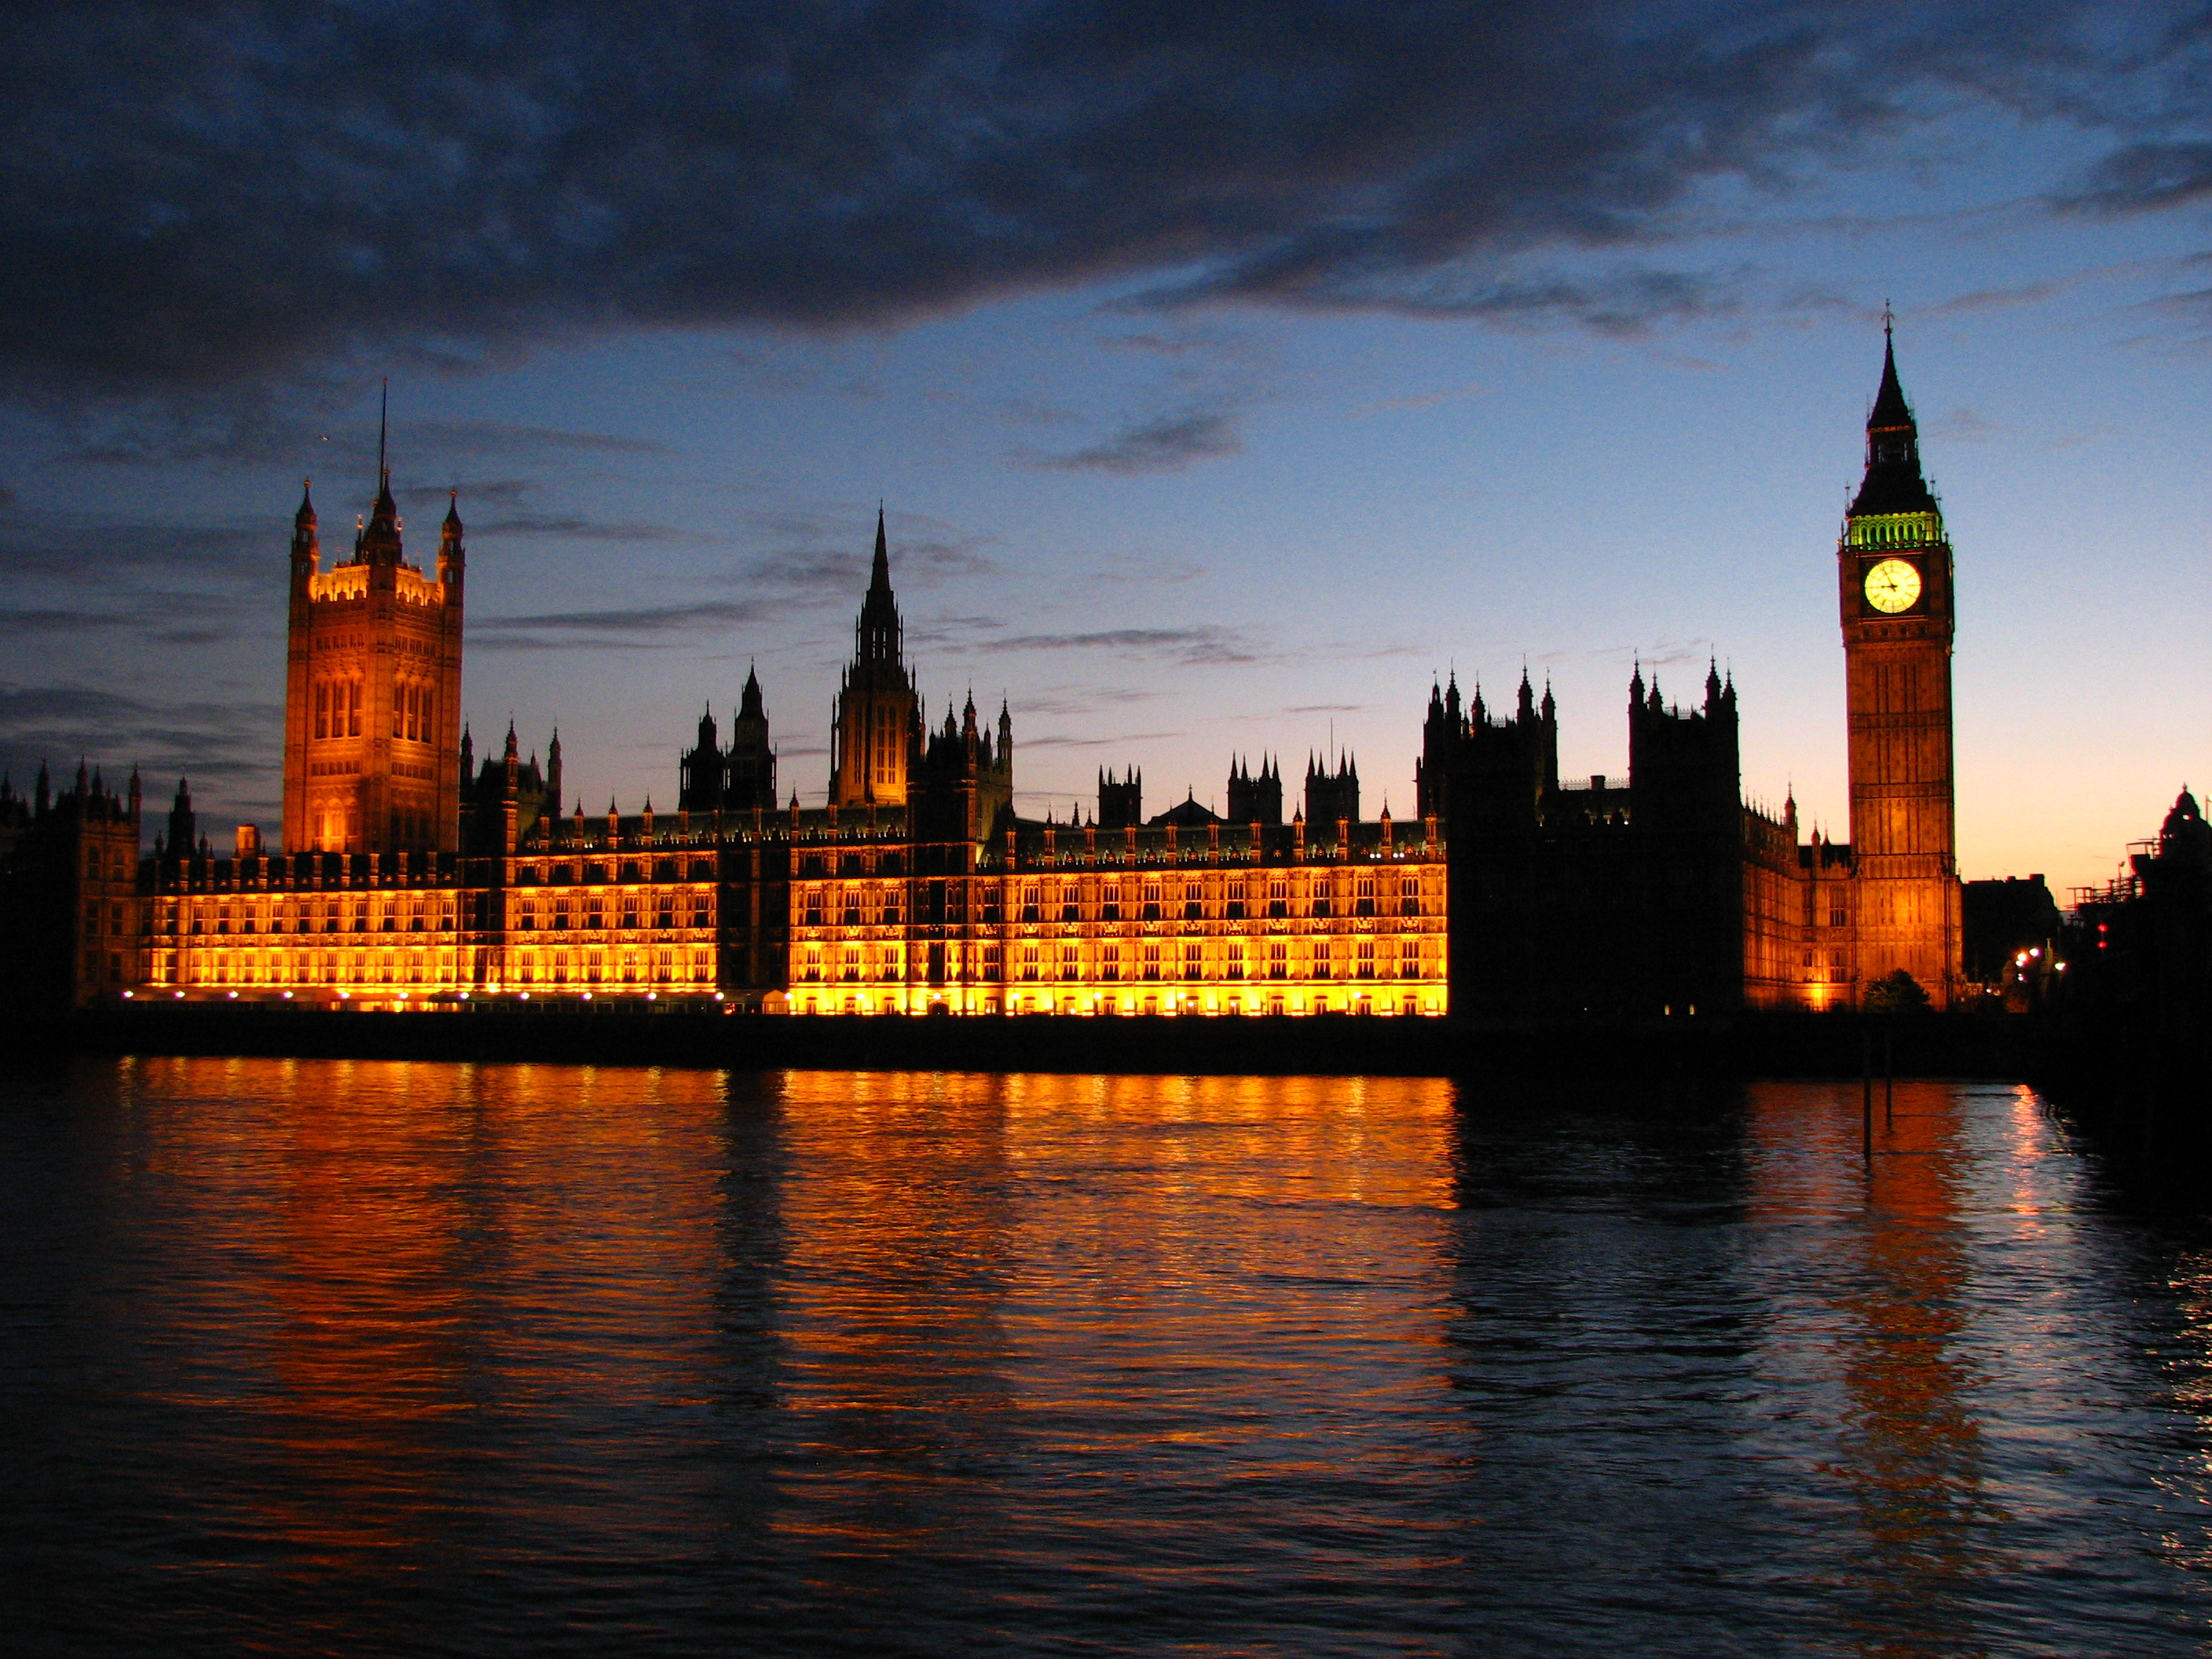 Palace_of_Westminster_at_sunset (1)